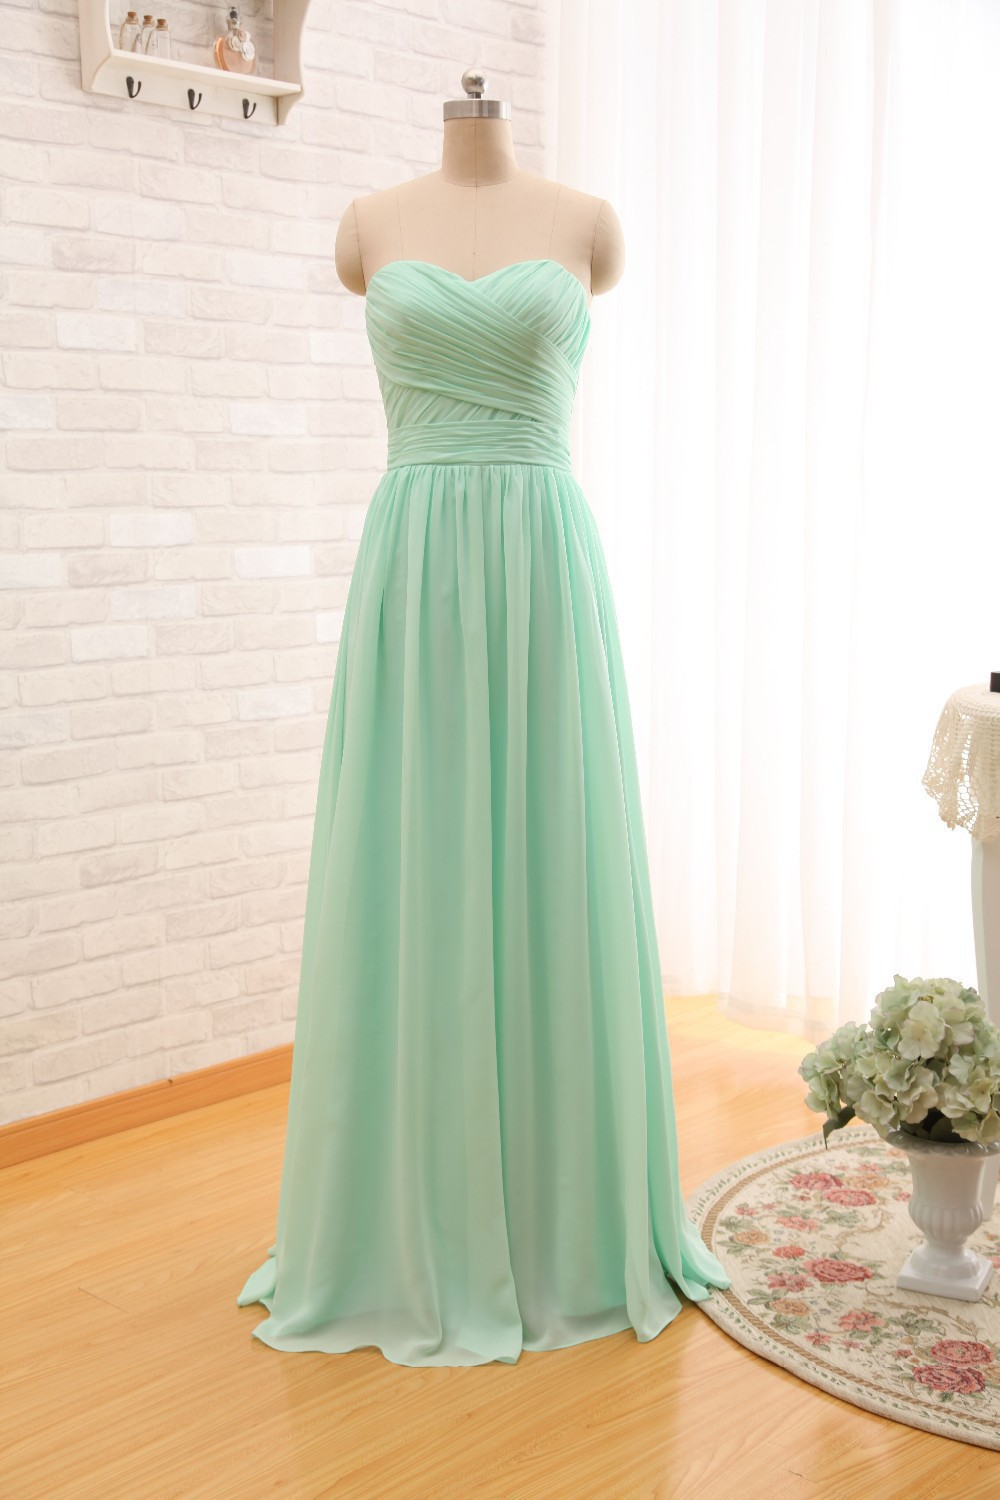 Ever beauty mint green long chiffon a line pleated bridesmaid ever beauty mint green long chiffon a line pleated bridesmaid dress under 50 wedding party dress 2018 robe demoiselle dhonneur in bridesmaid dresses from ombrellifo Choice Image